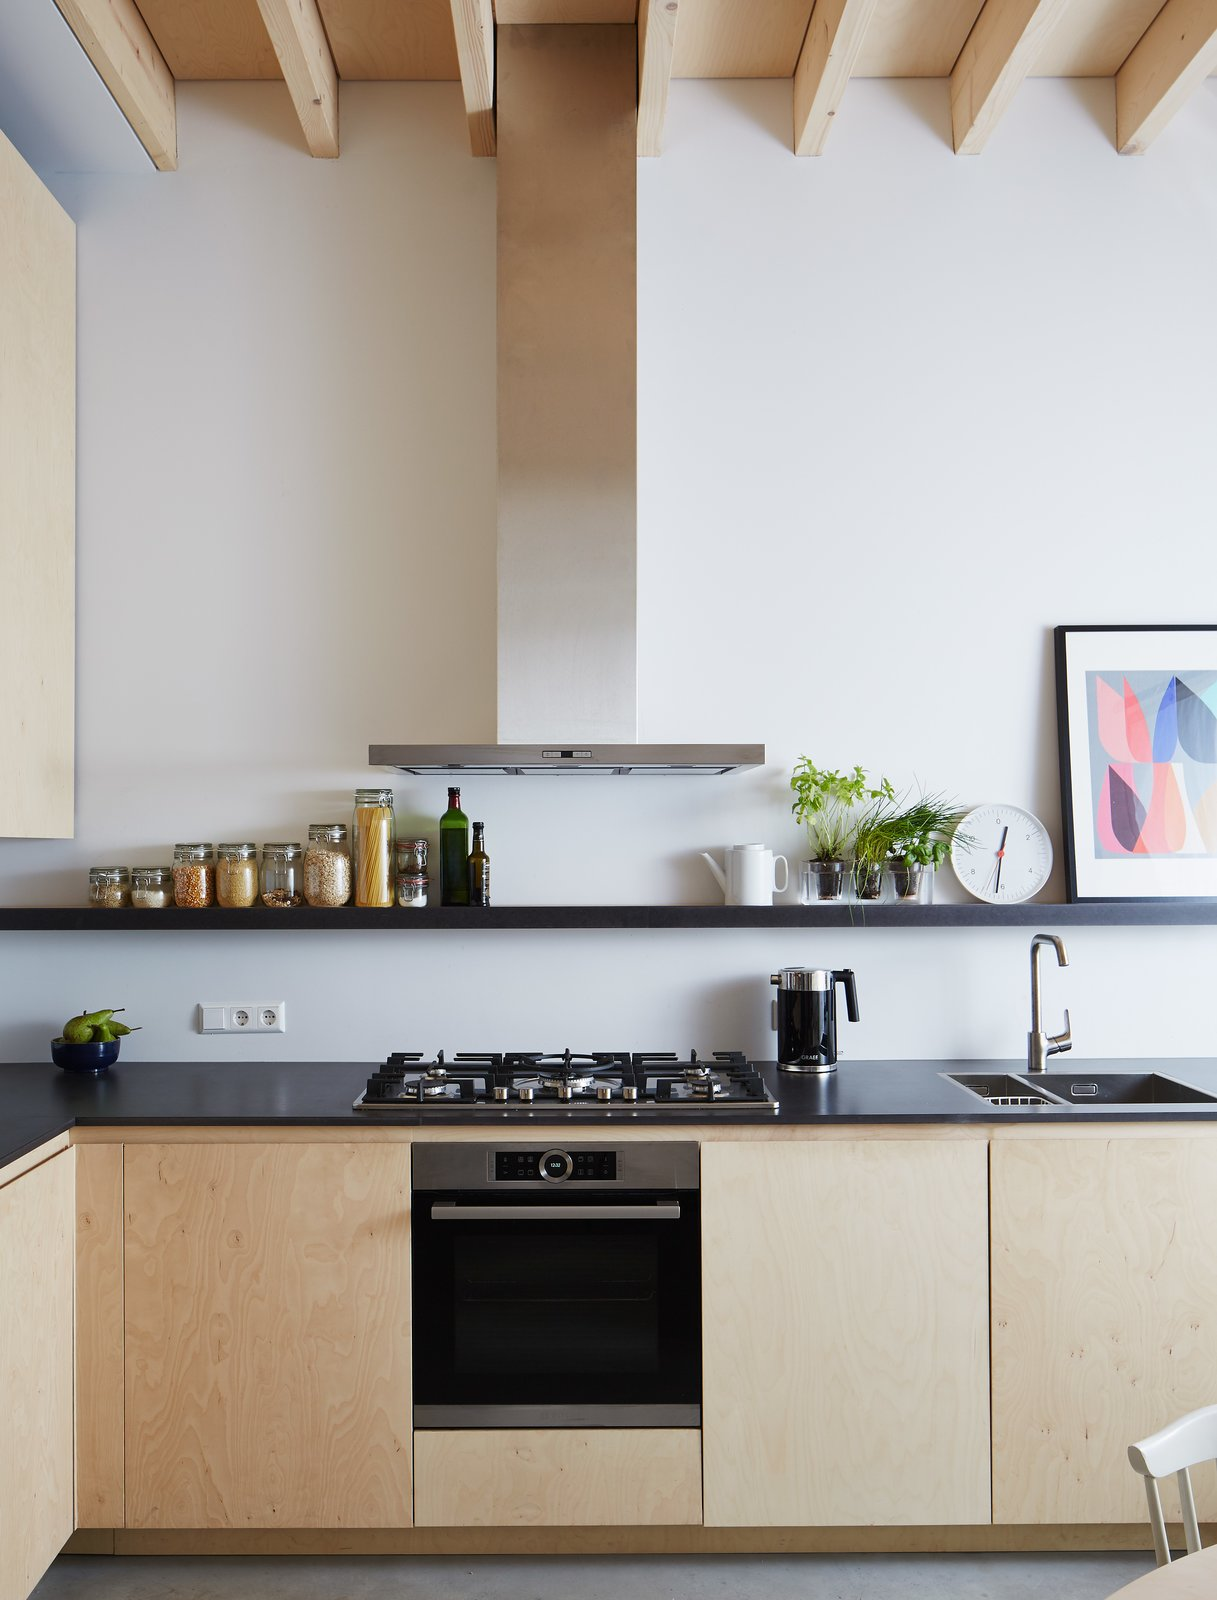 The birch plywood cabinets, designed by Jeffries, are paired with engineered wood countertops by Valchromat and appliances by Bosch.